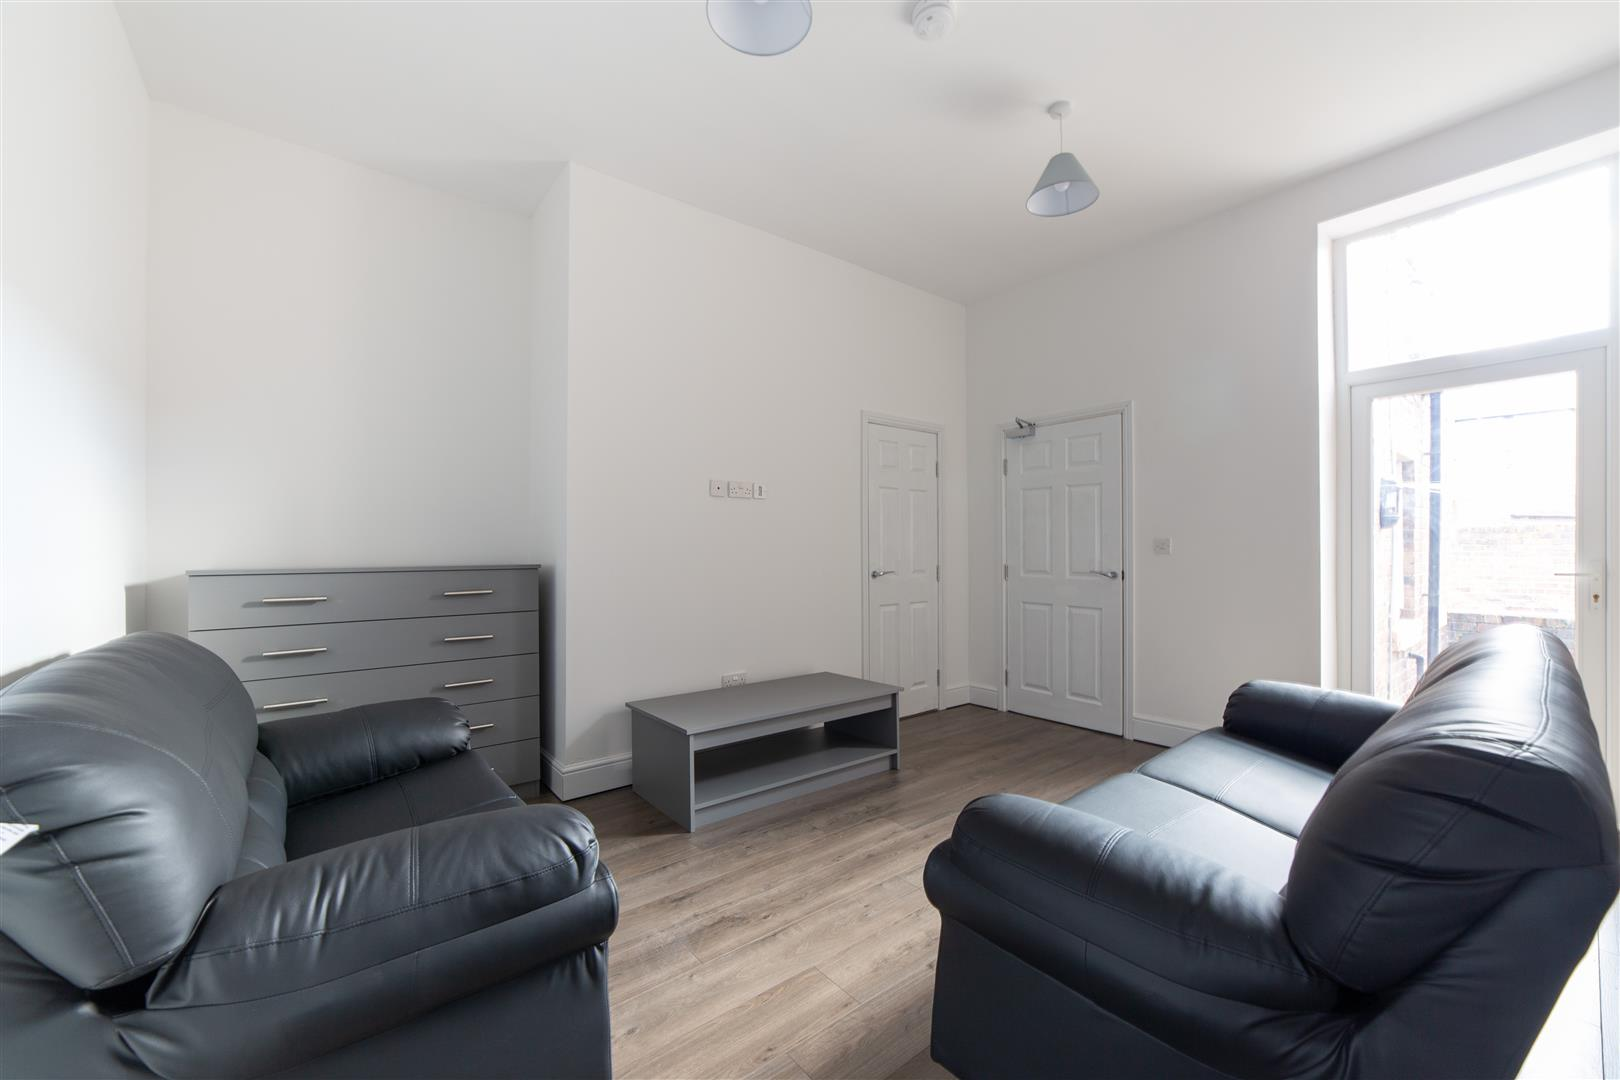 2 bed flat to rent in Newcastle Upon Tyne, NE6 5SP - Property Image 1